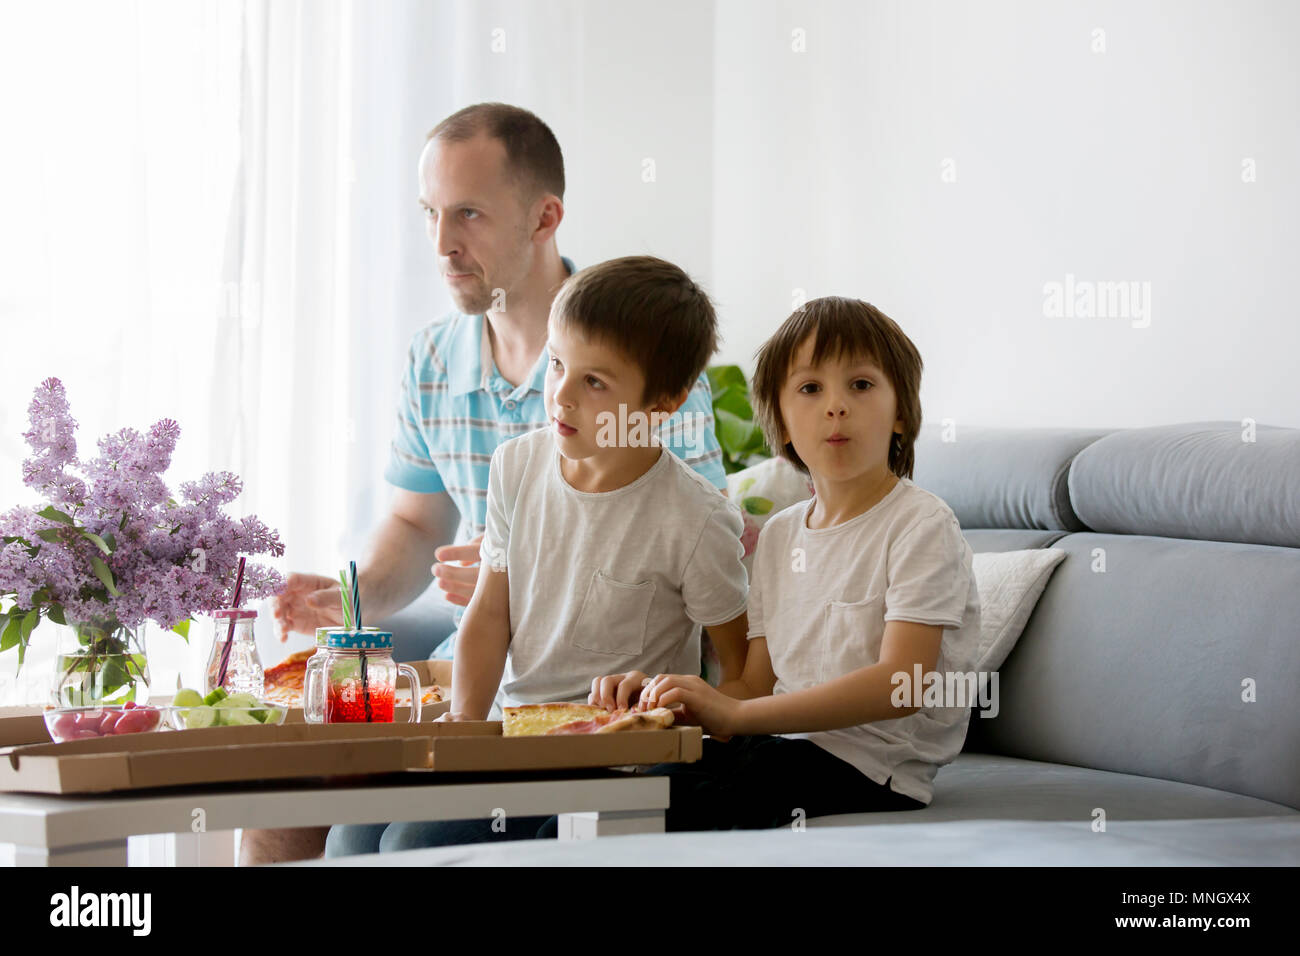 Father and his two boys, children, eating pizza at home and watching TV on a sunday - Stock Image